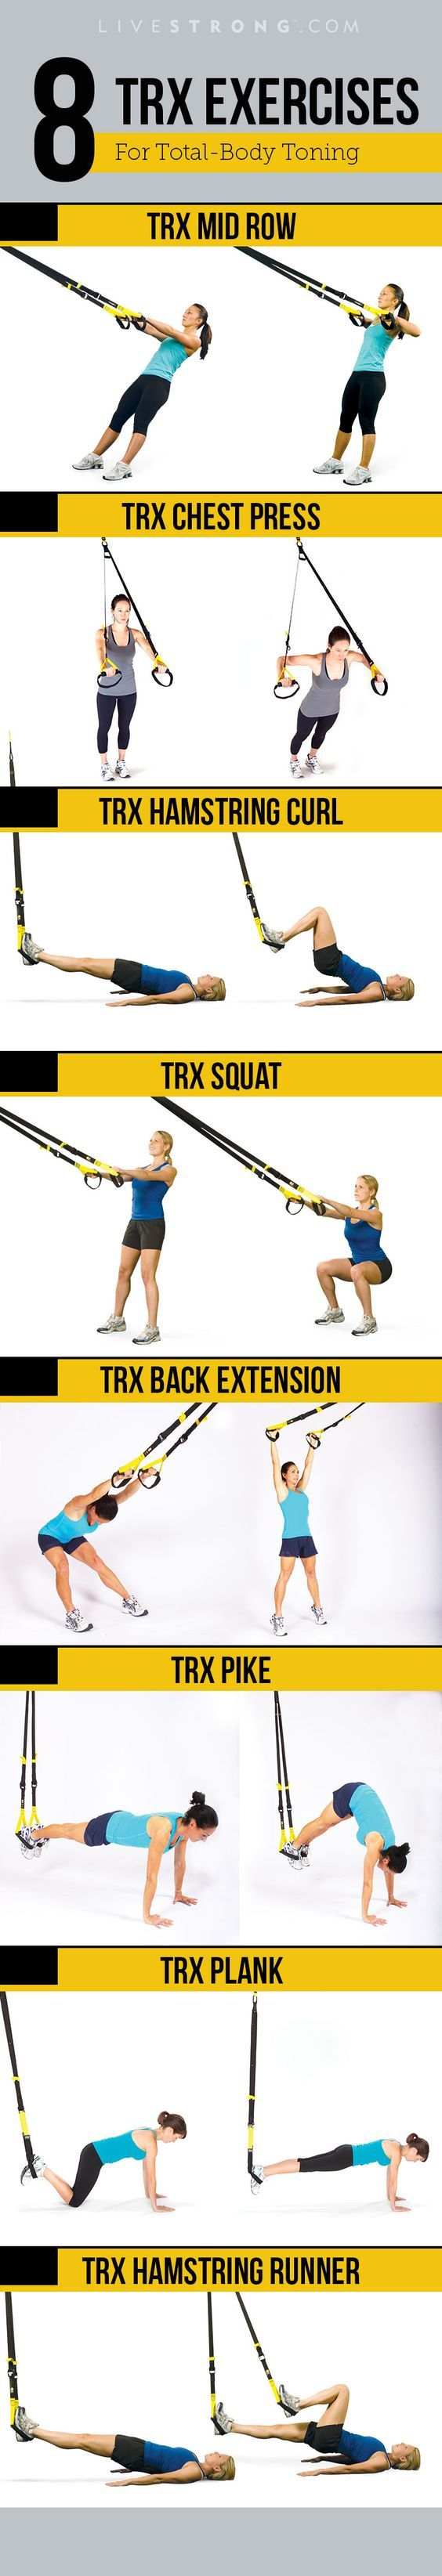 You may have seen those black-and-yellow straps hanging from the ceiling at your gym and wondered how the heck to use them. This deceptively simple piece of equipment is the TRX Suspension Trainer, and it was developed to deliver an incredible total-body workout using only your body weight as resist. LiHao Schlingentrainer Suspensiontrainer TRX Functional Training Fitness - http://www.amazon.de/dp/B00RLH0M6C